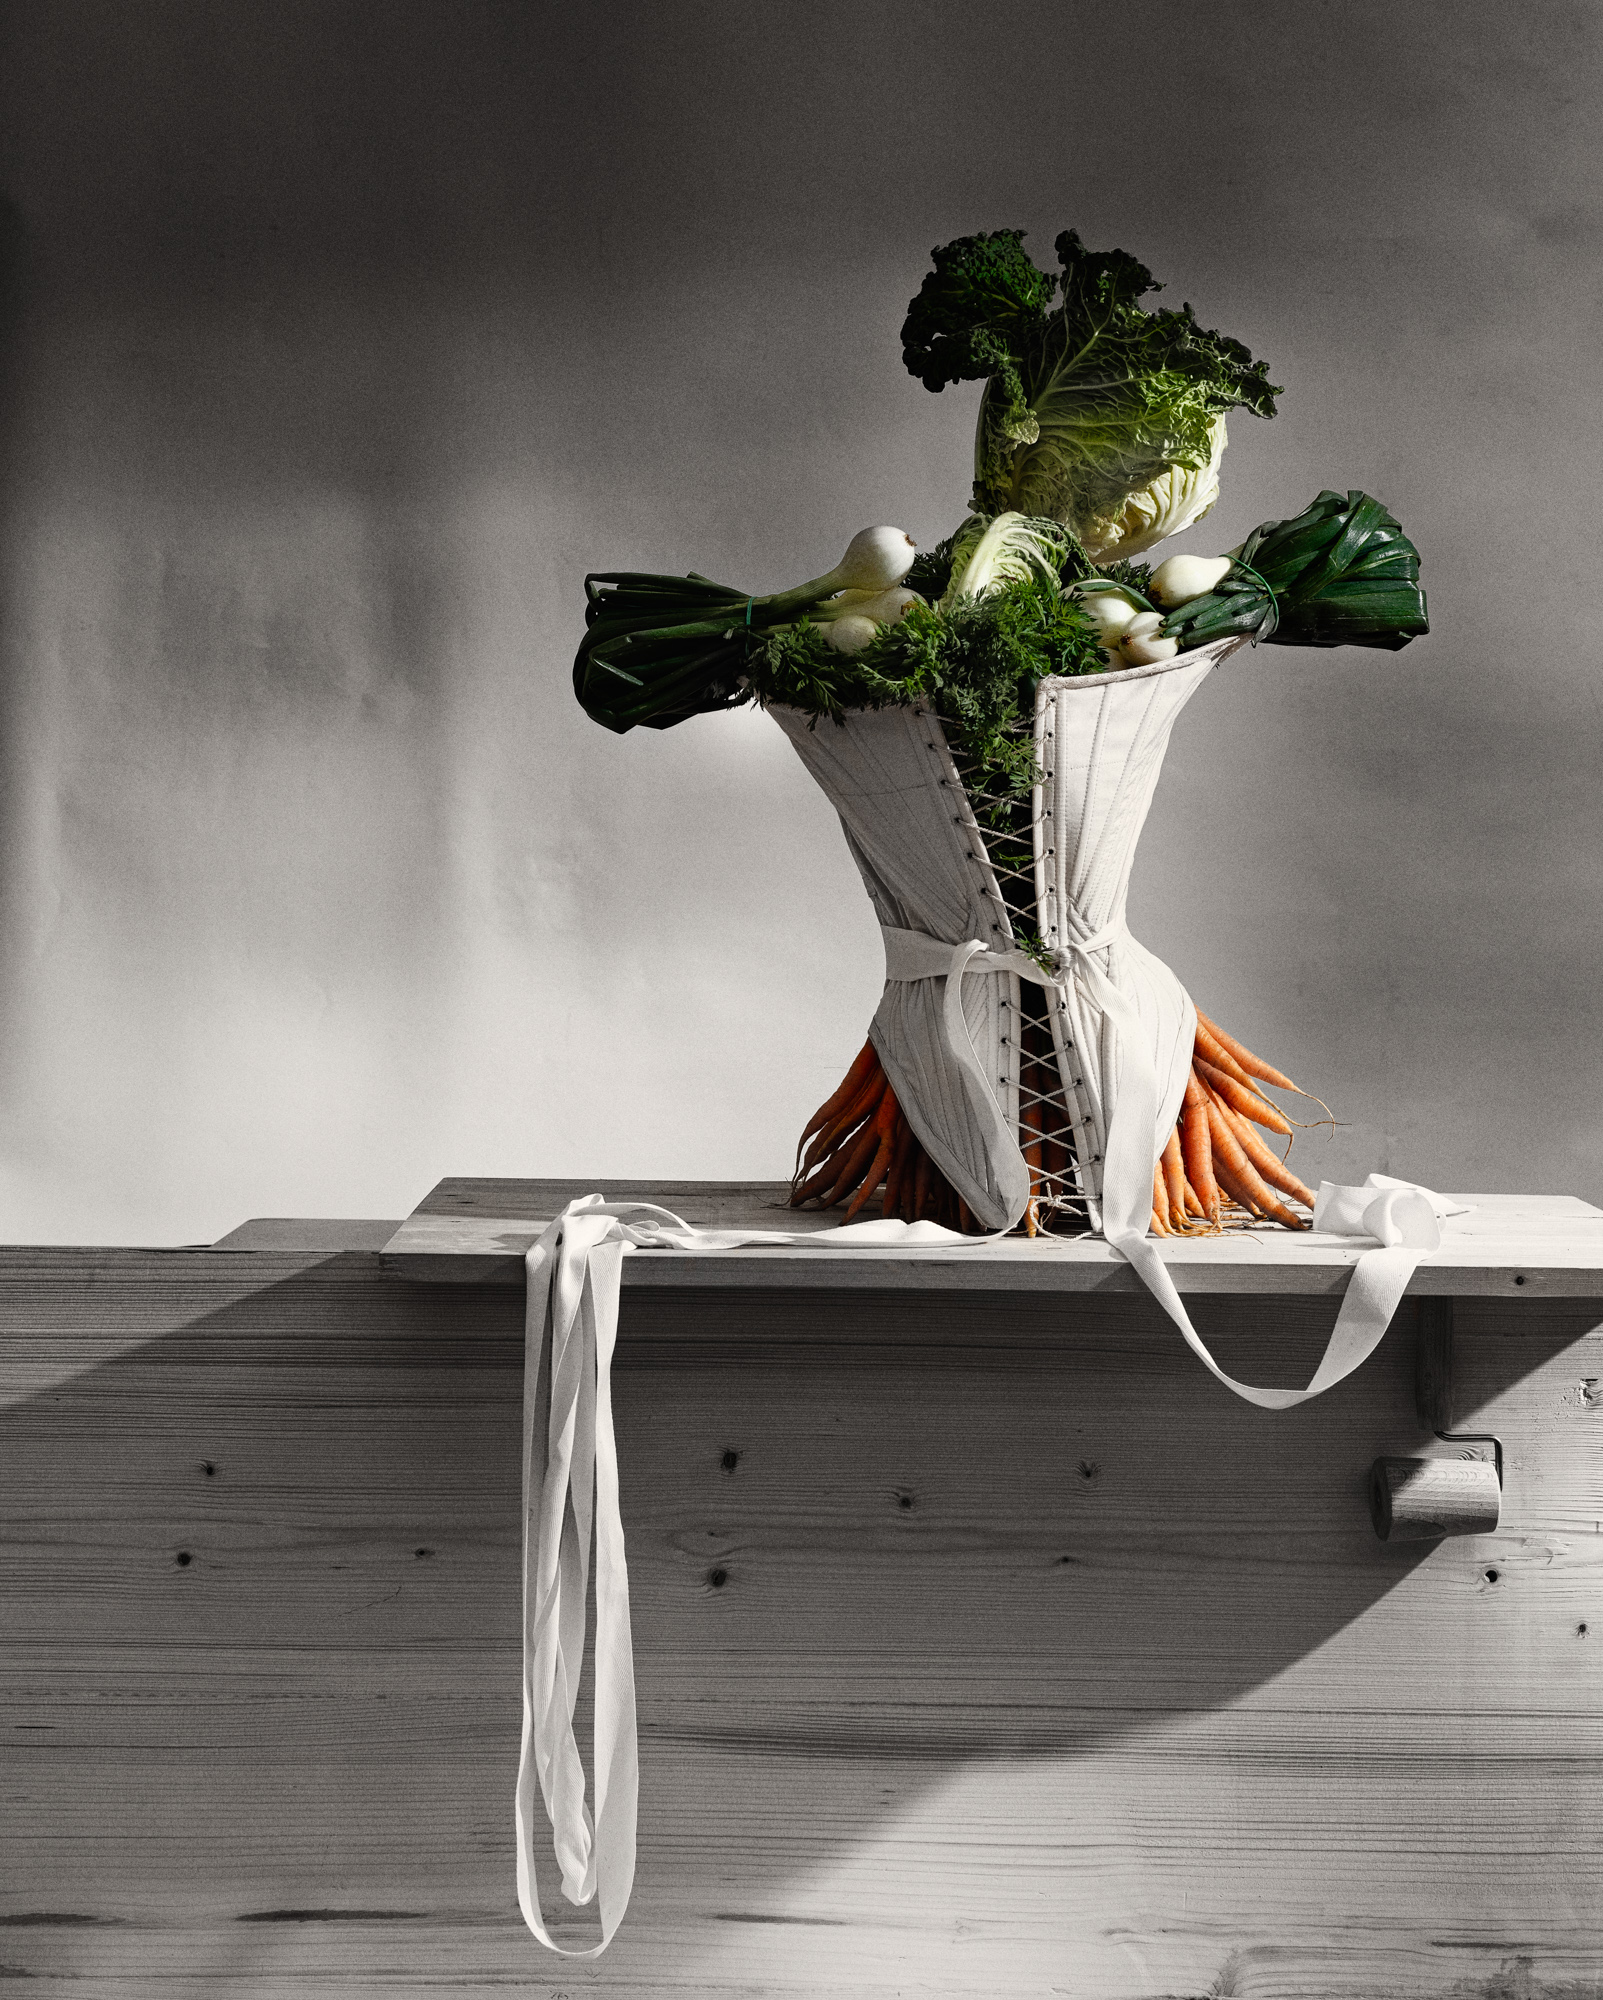 When fashion meets food. A cabbage, carrots and onions put together into a corset, resembling the figure of a woman leaning elegantly on a bench with the back to the viewer.